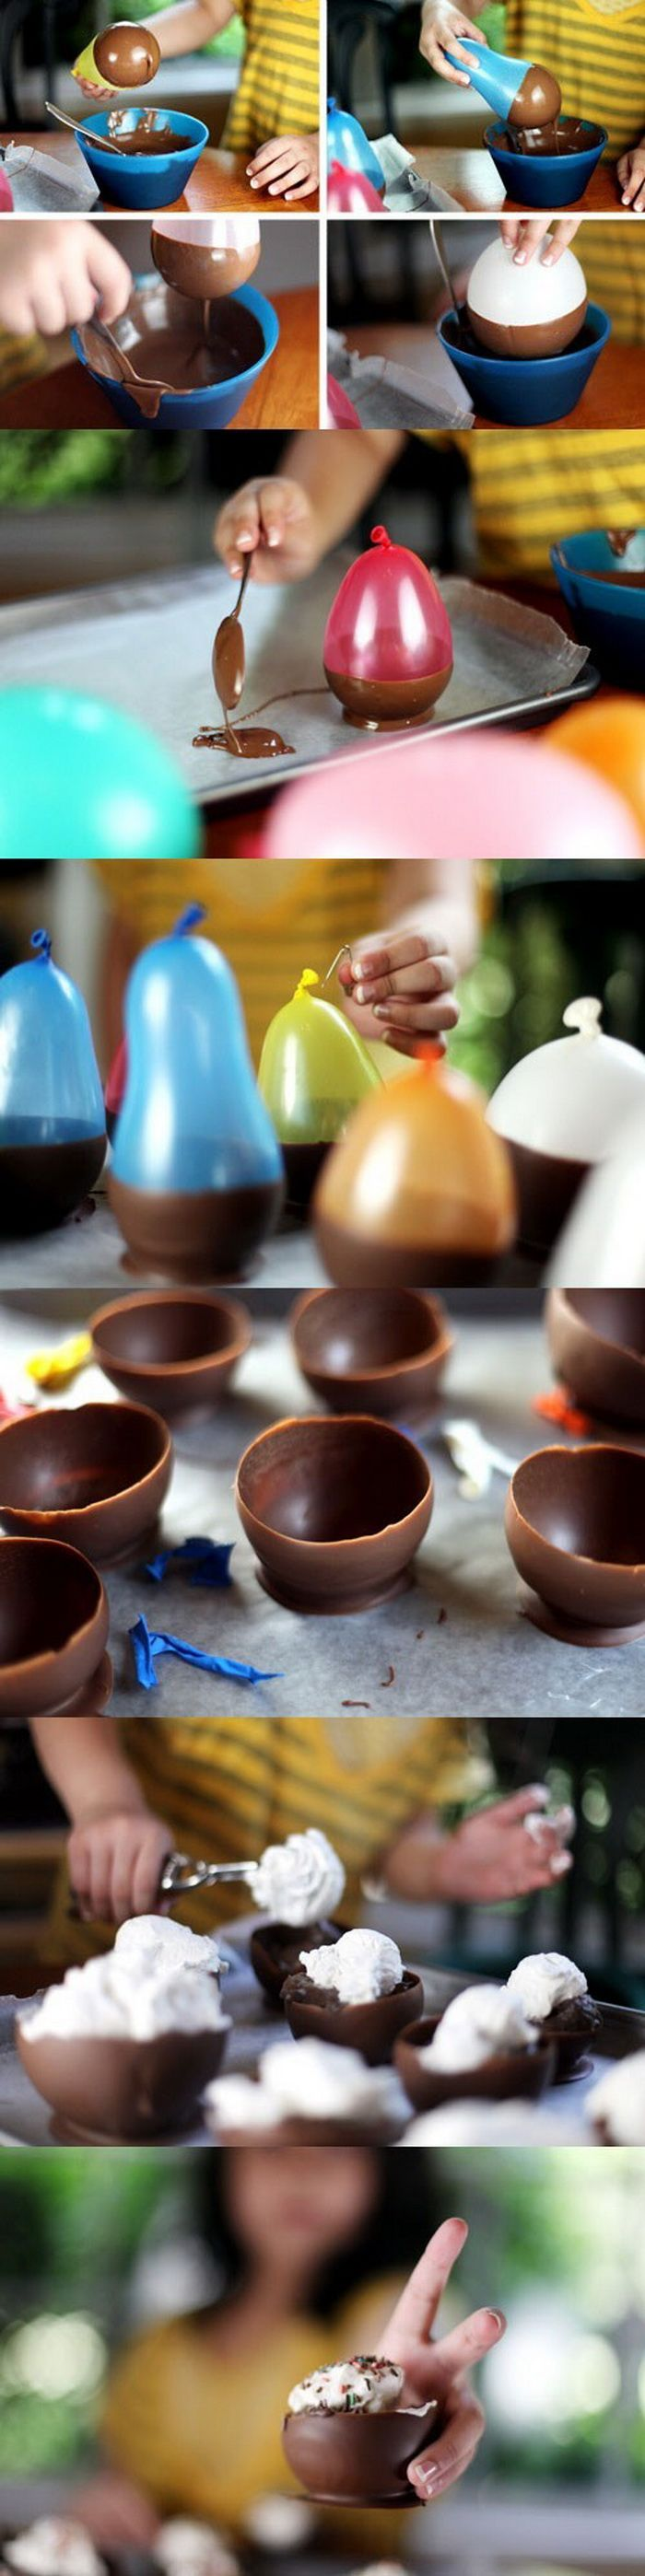 DIY  how to make chocolat baskets for ice cream